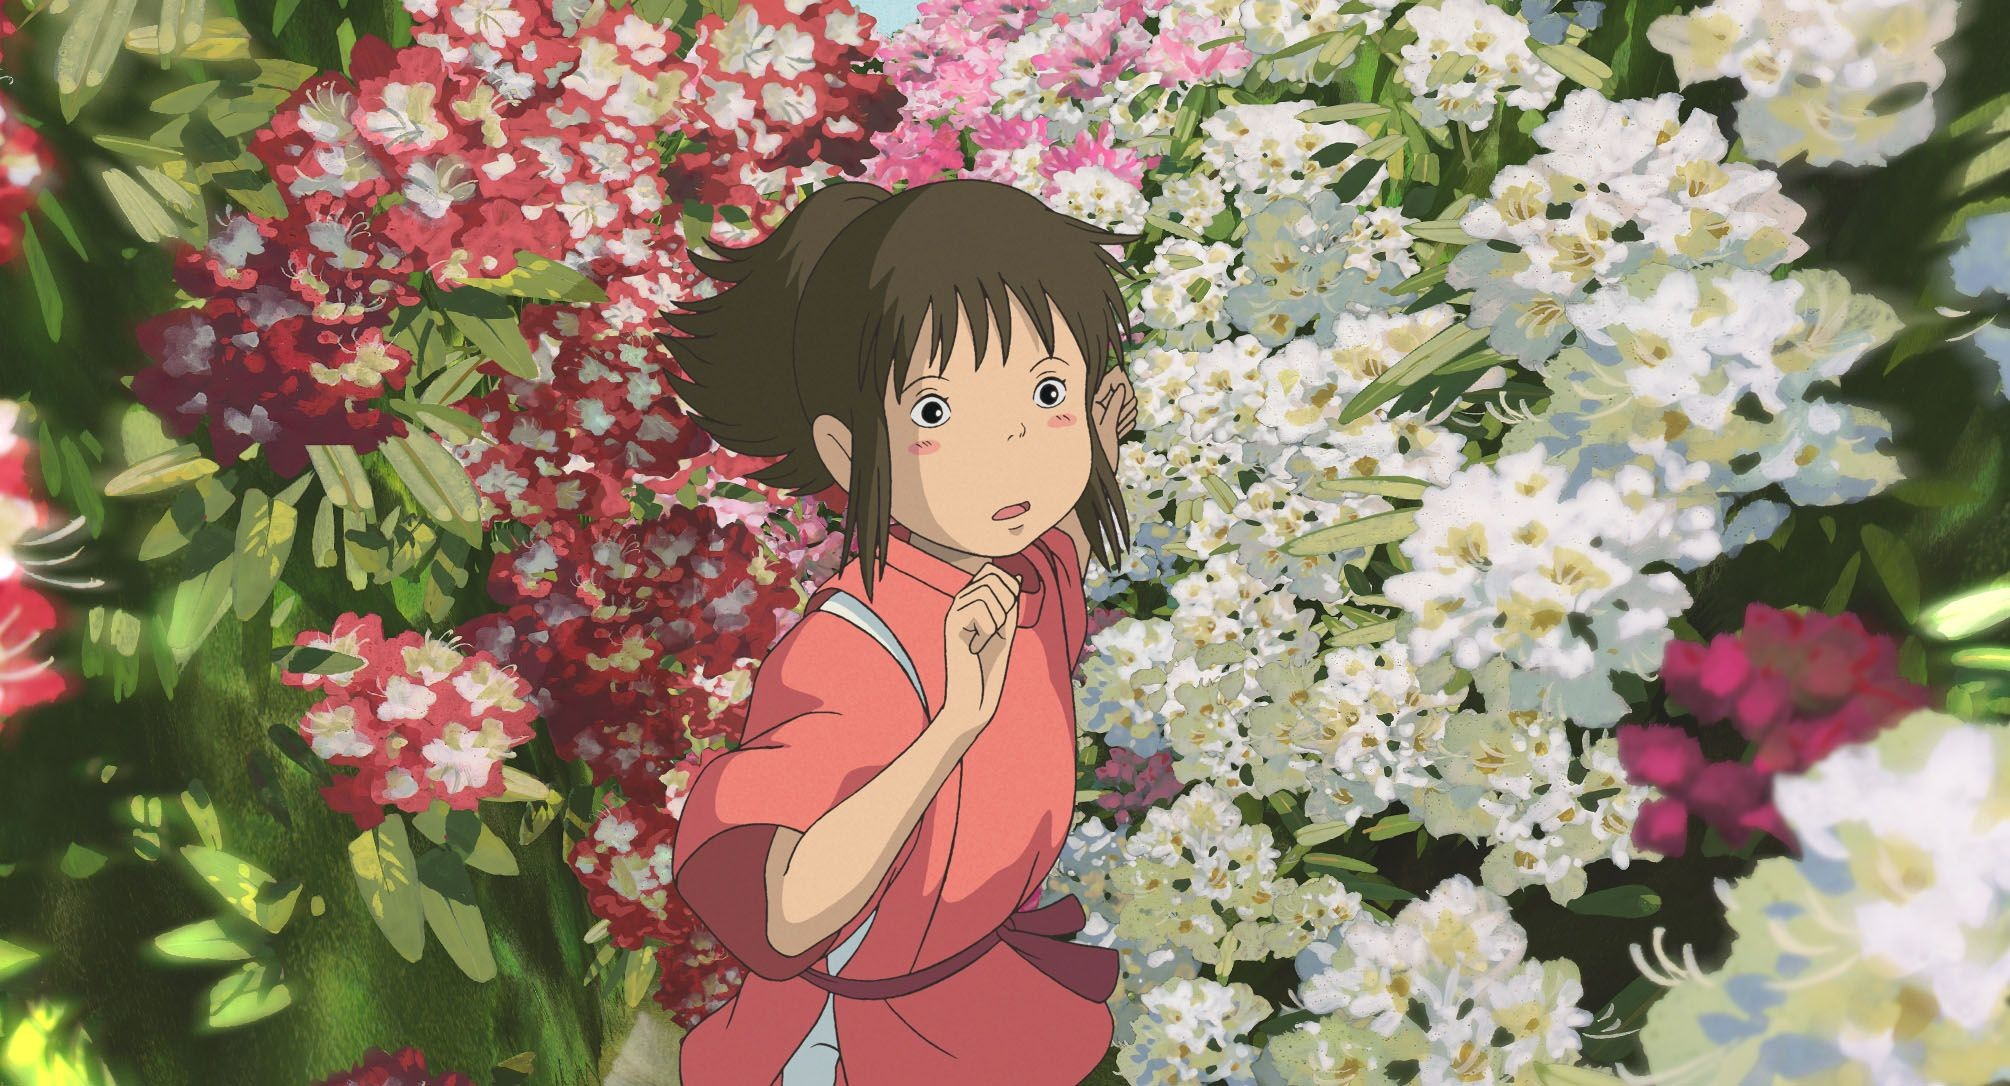 2010x1086 Studio Ghibli Backgrounds | PixelsTalk.Net